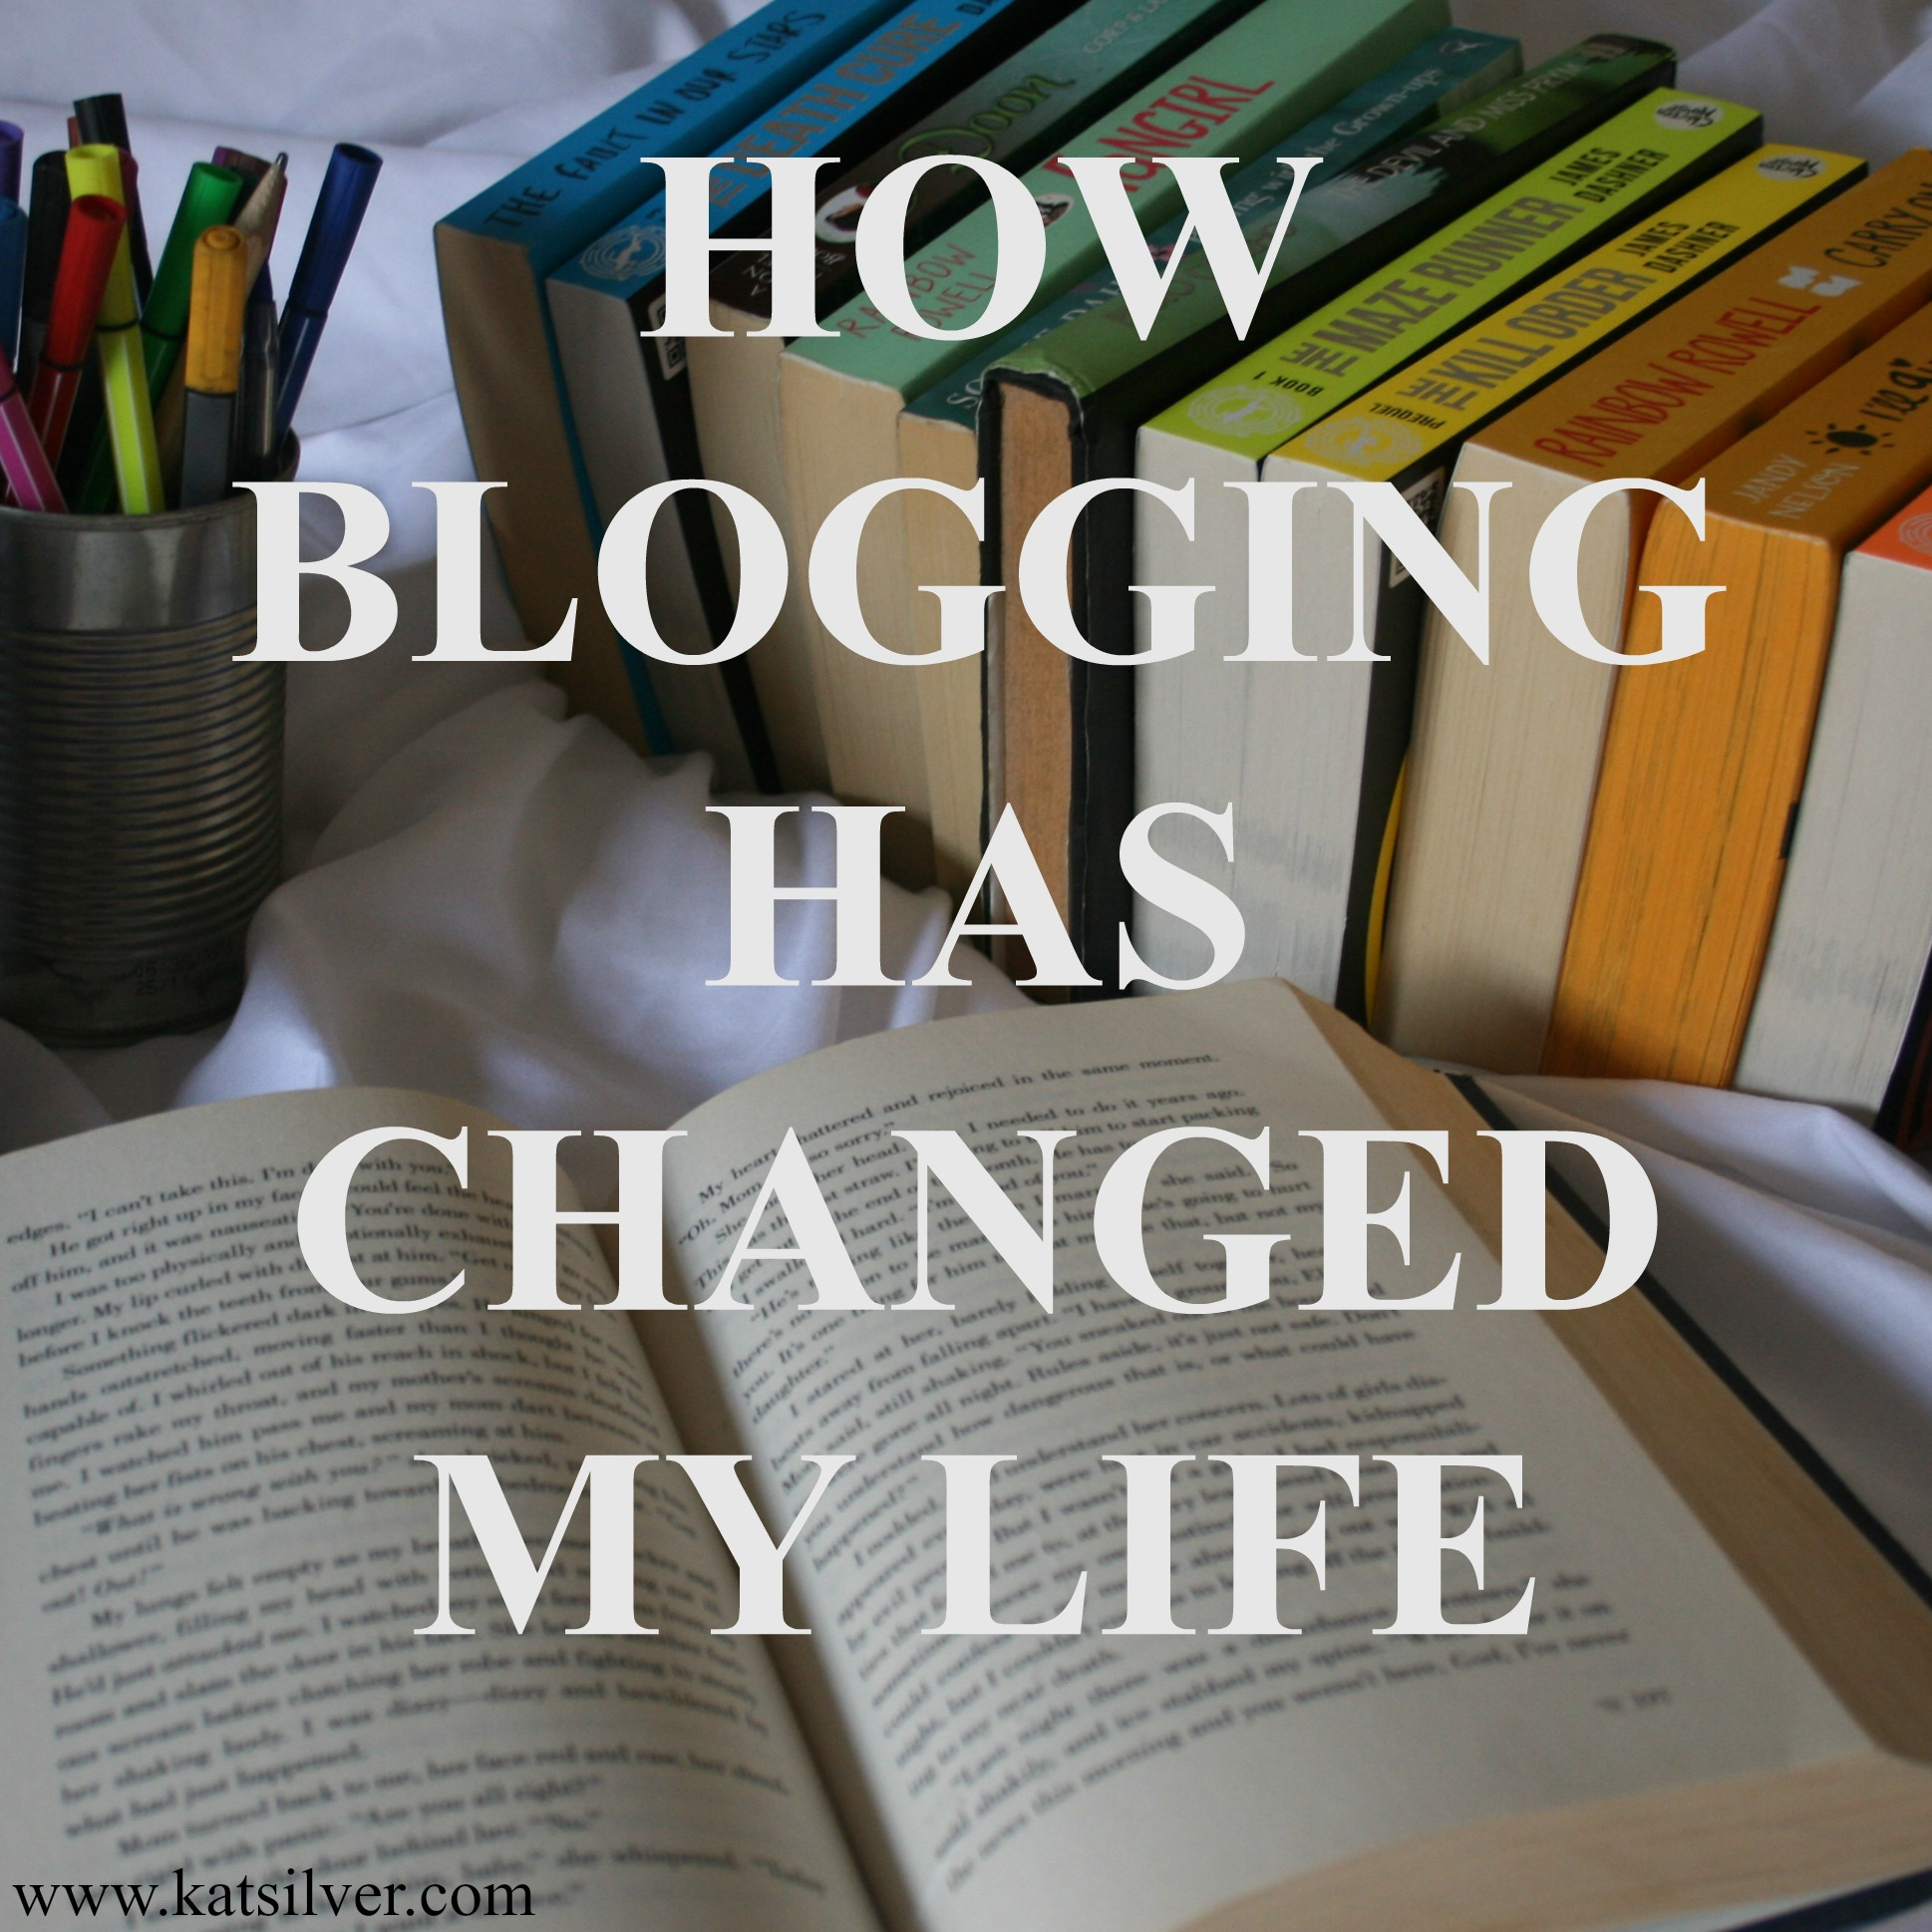 Image result for Images for Blogging changed my life